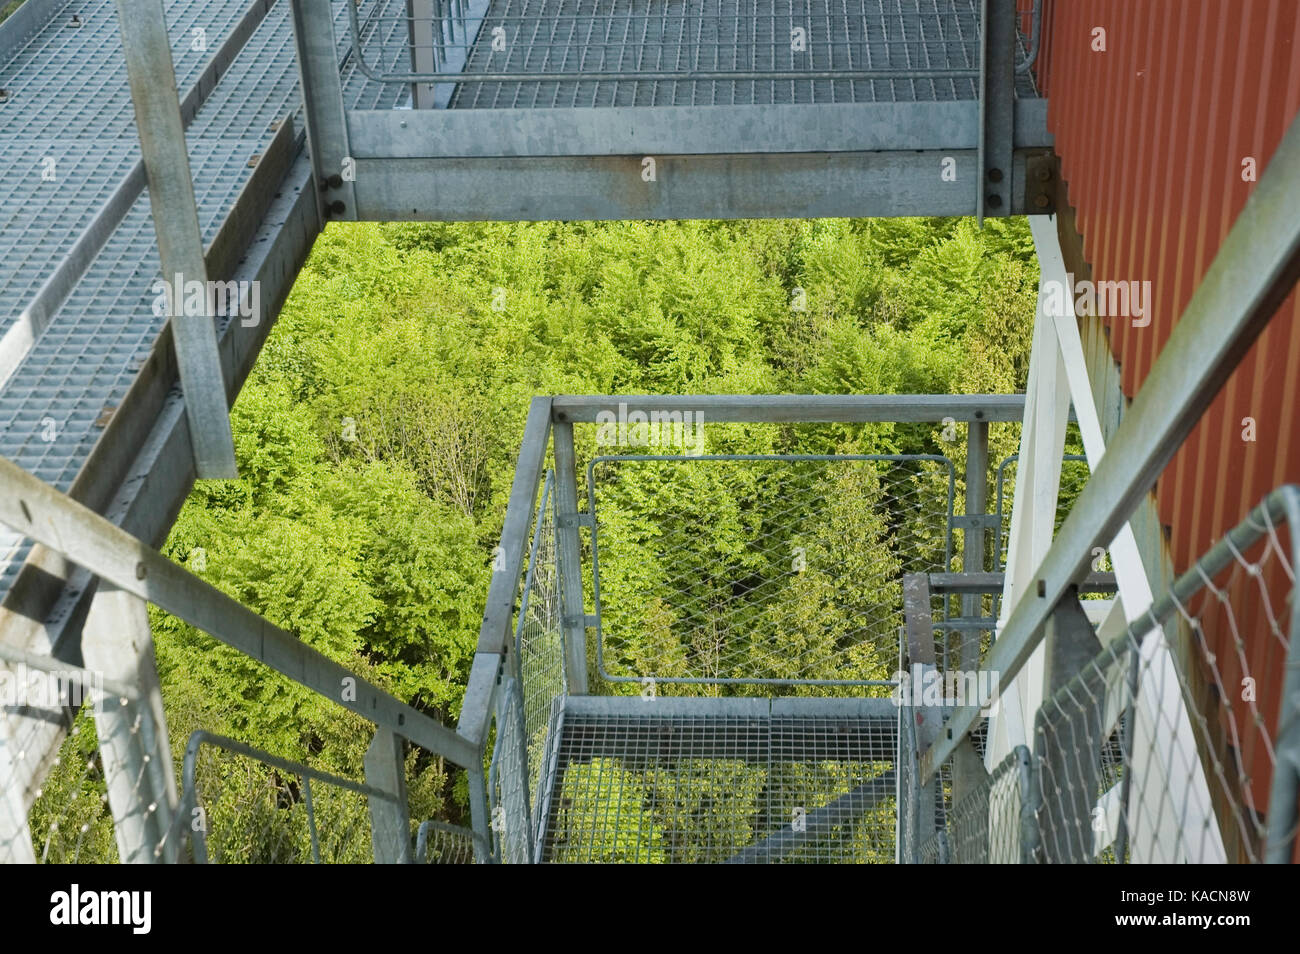 staircase of an outlook tower - Stock Image